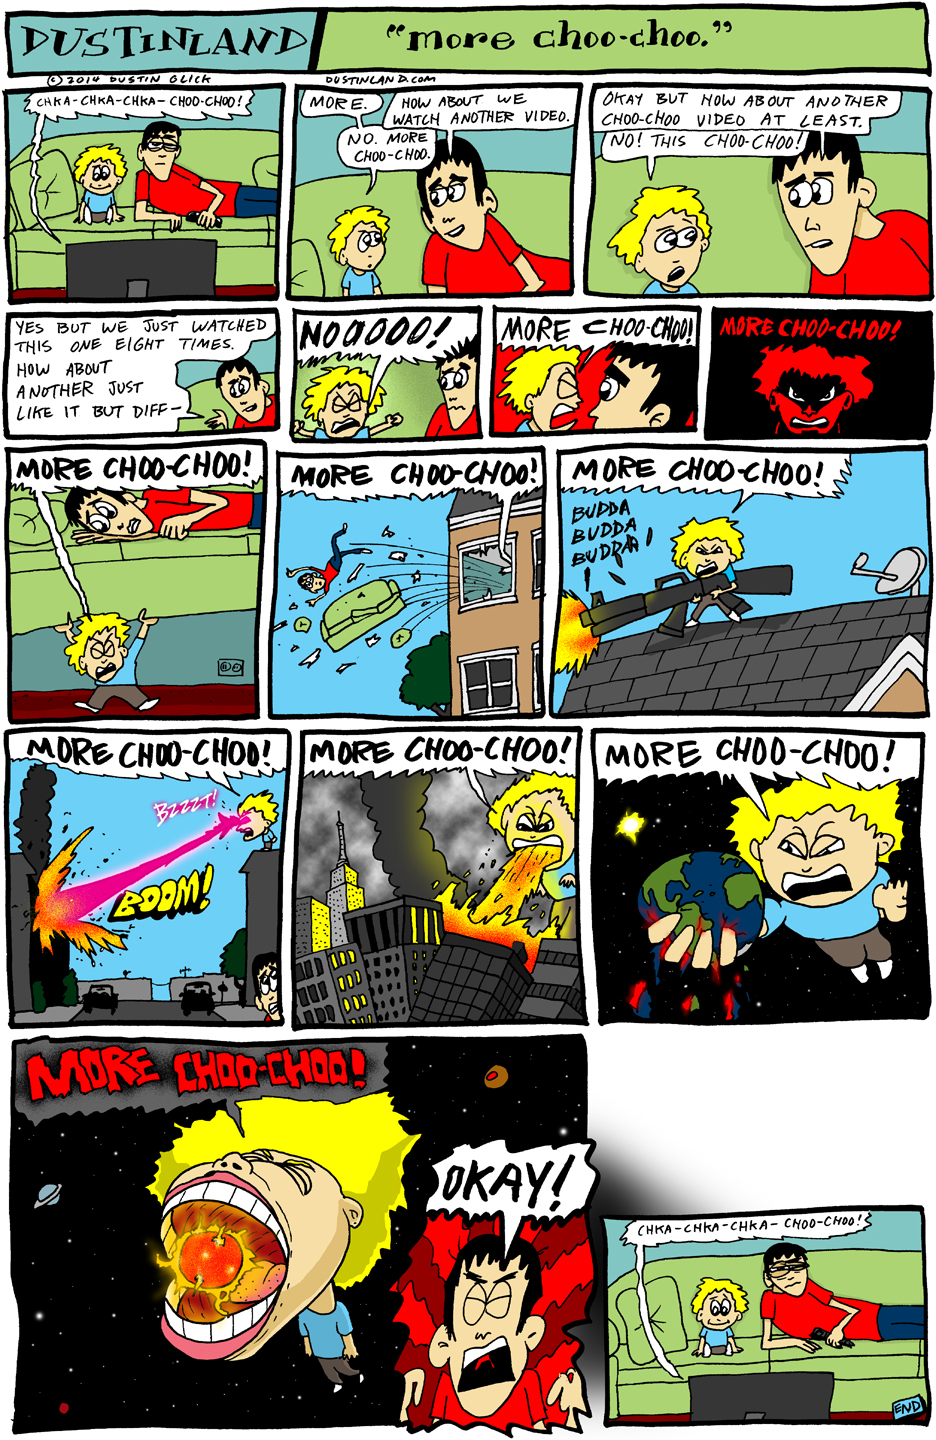 dustinland more choo choo comic